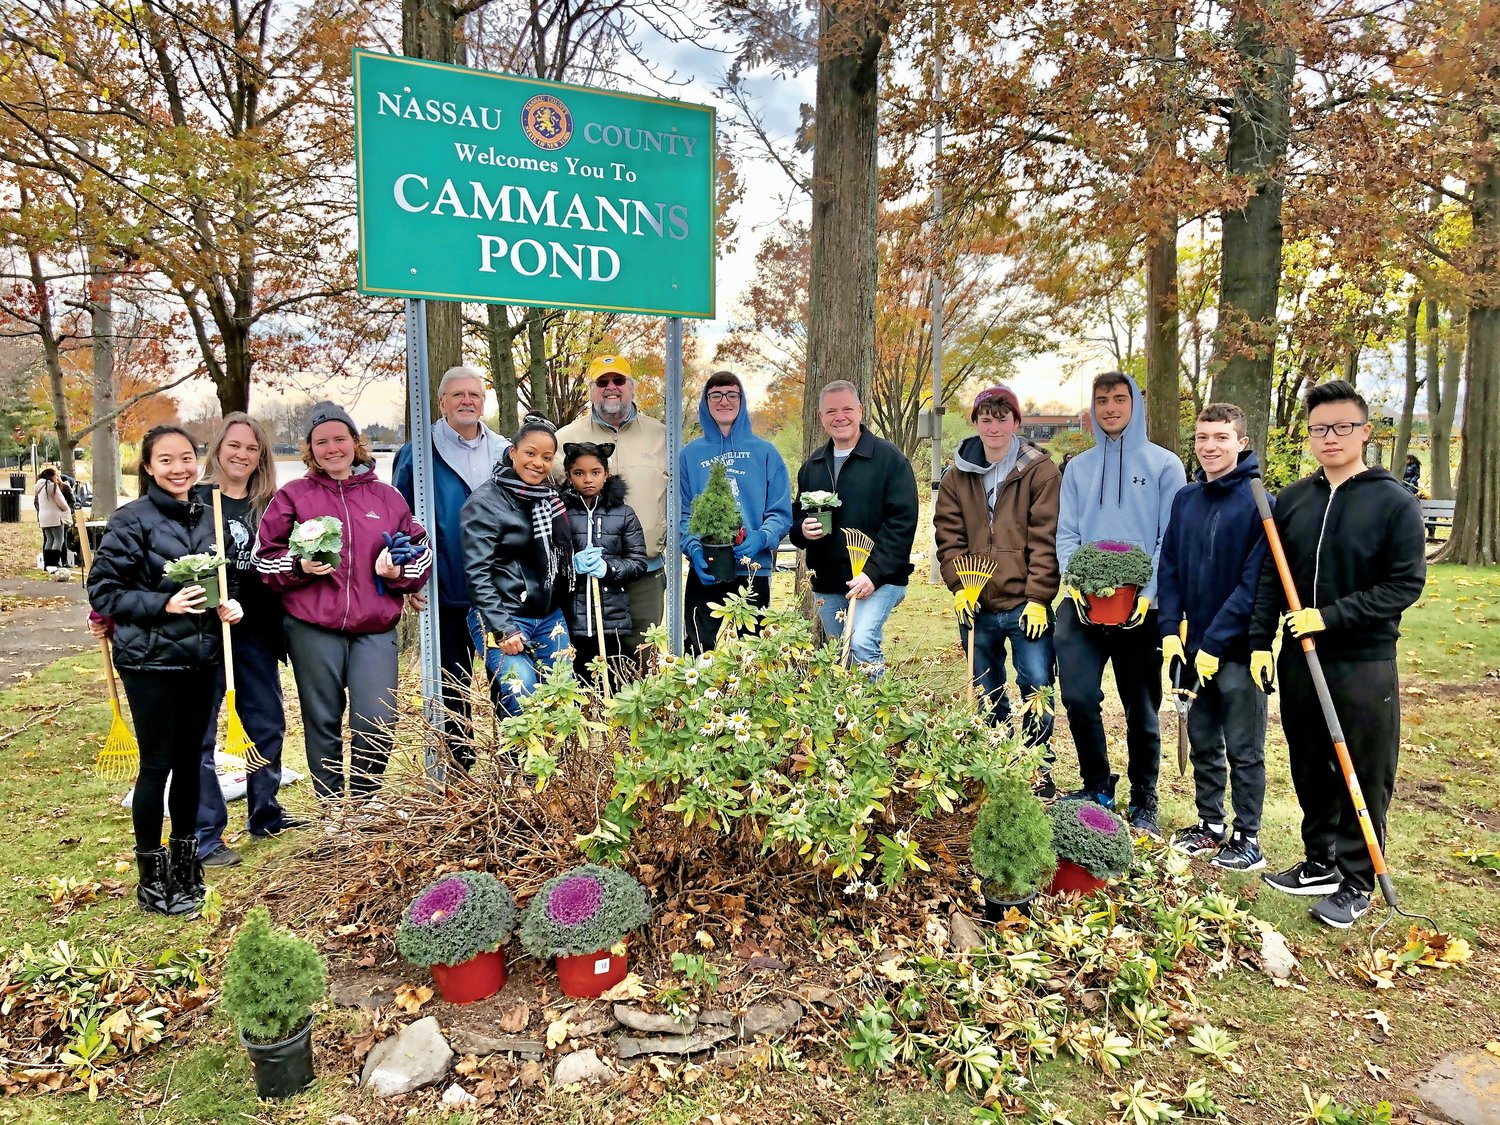 Fresh plants were placed around Cammanns Pond's welcoming sign. Nassau County Legislator Steve Rhoads, fifth from right, joined in the effort.